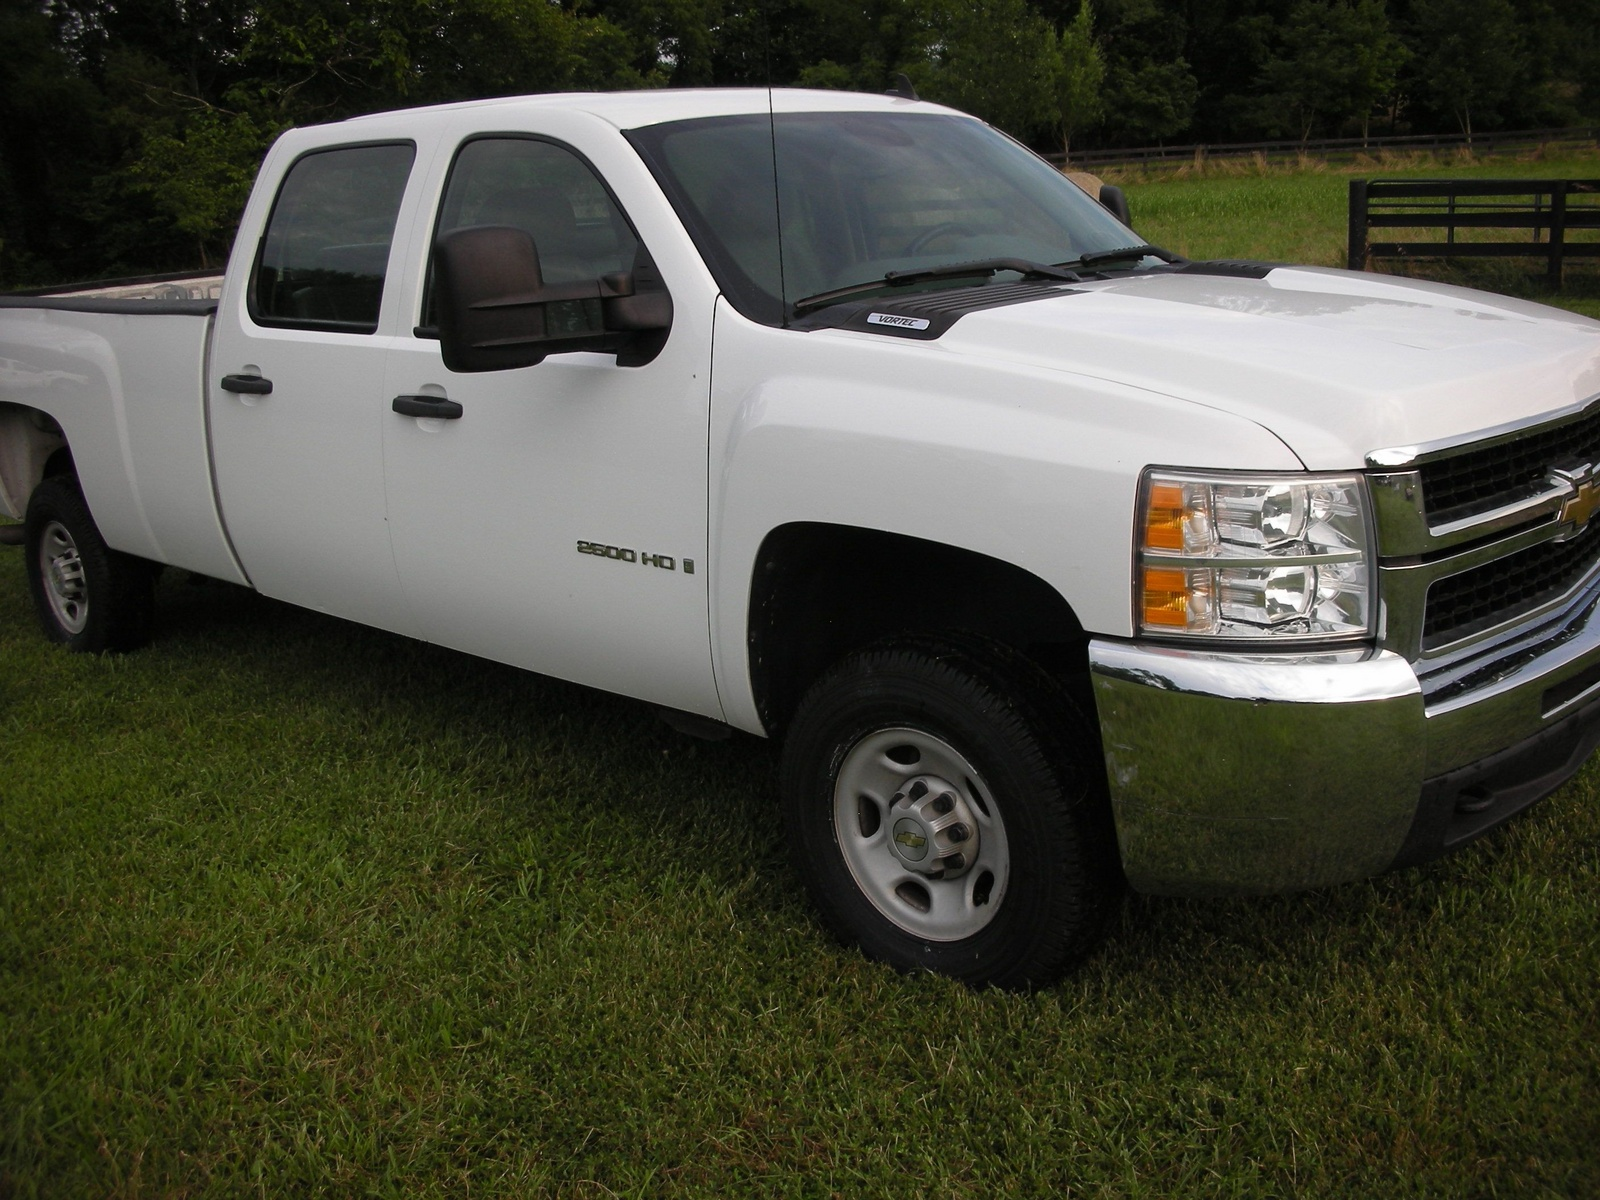 2009 chevrolet silverado 2500hd - pictures